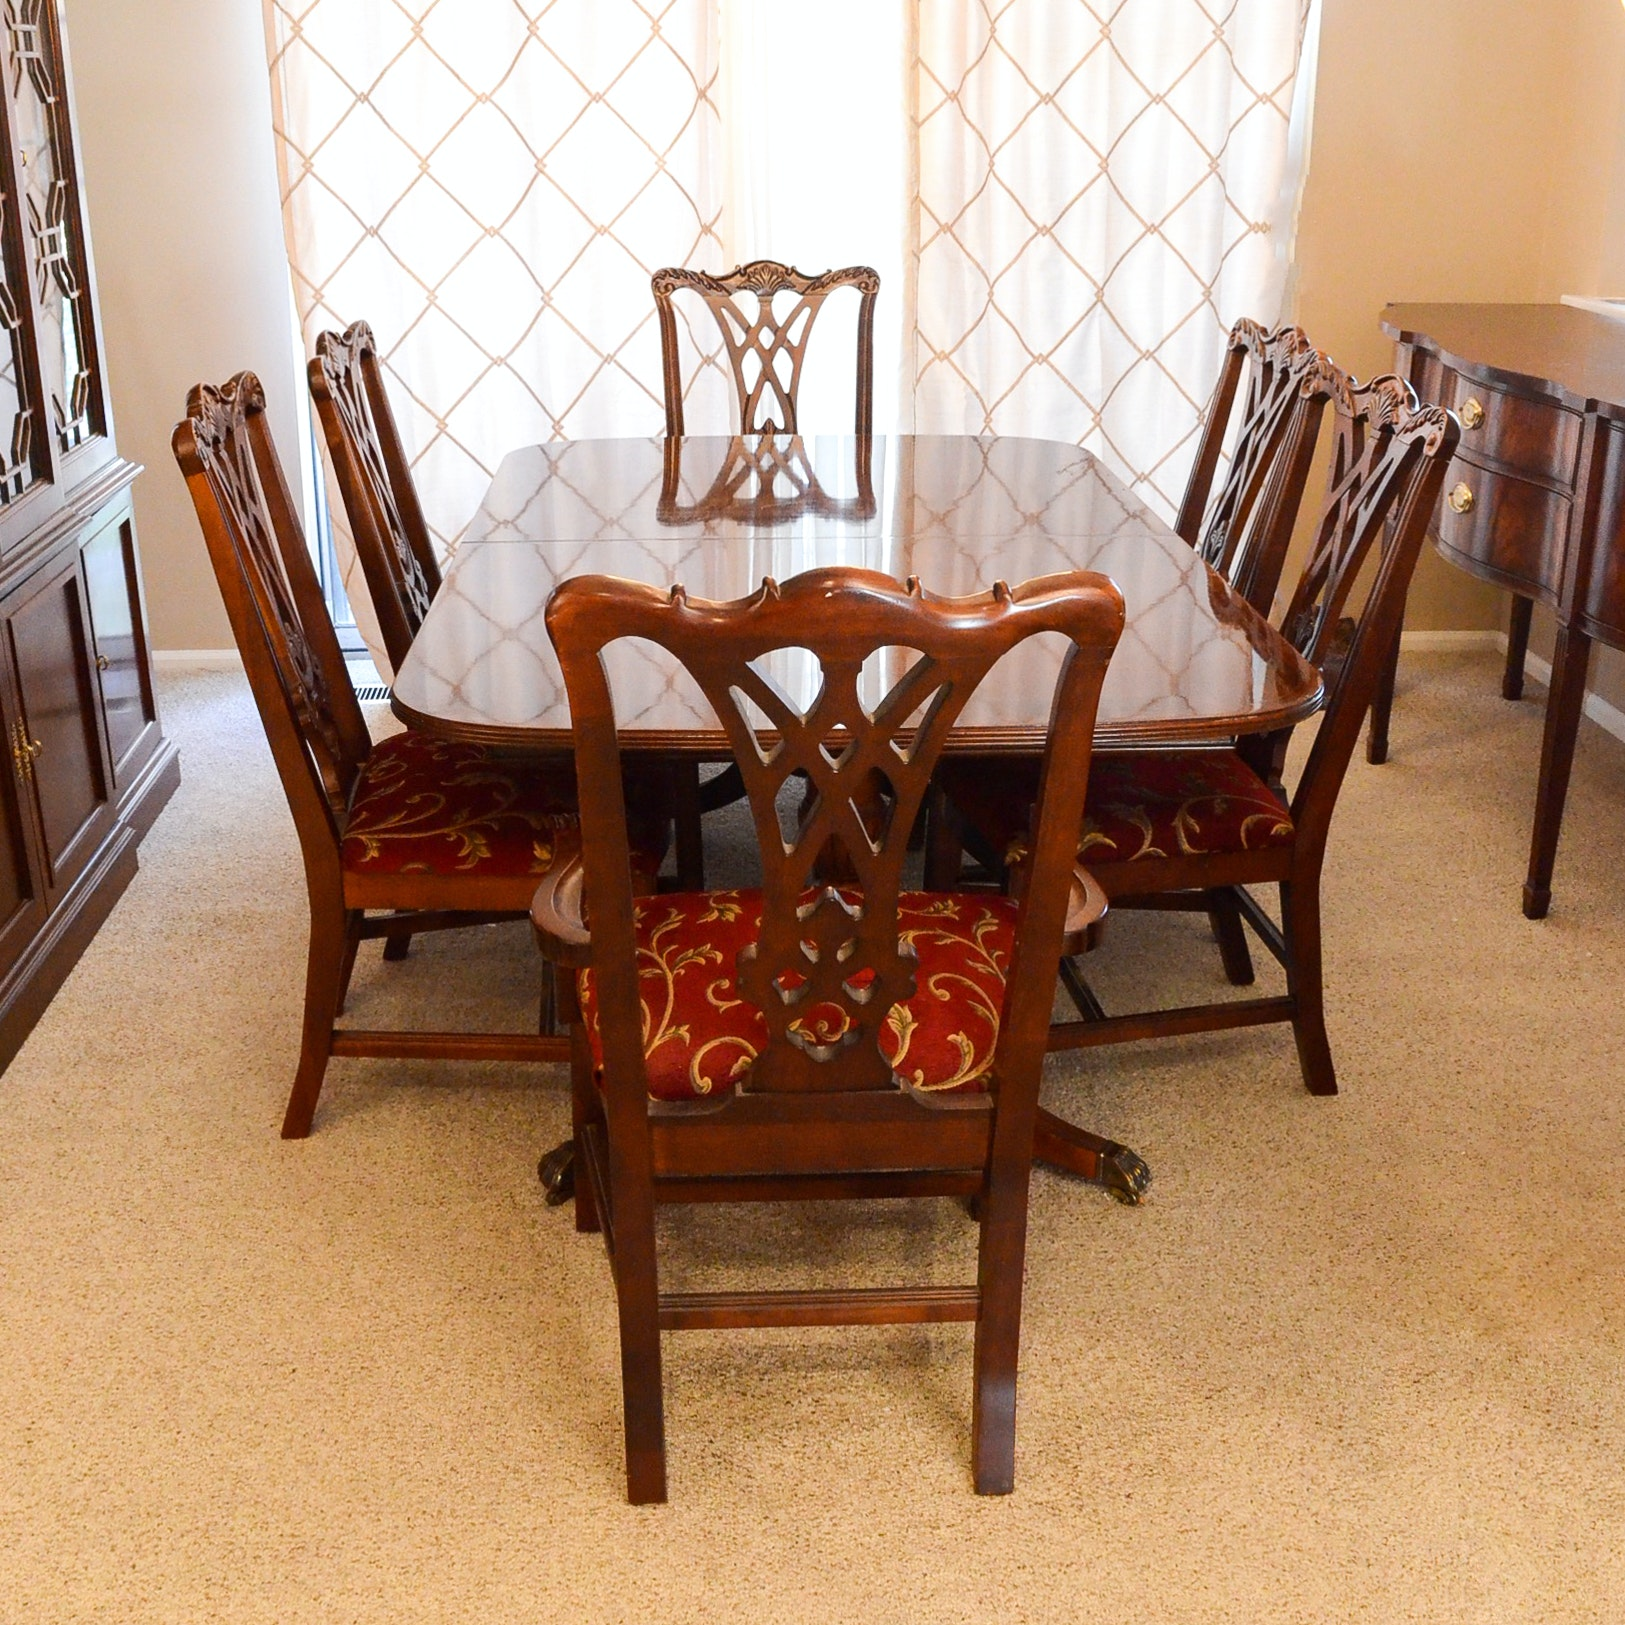 Thomasville Chippendale Style Dining Table with Six Chairs  : DSC8141jpgixlibrb 11 from www.ebth.com size 880 x 906 jpeg 222kB